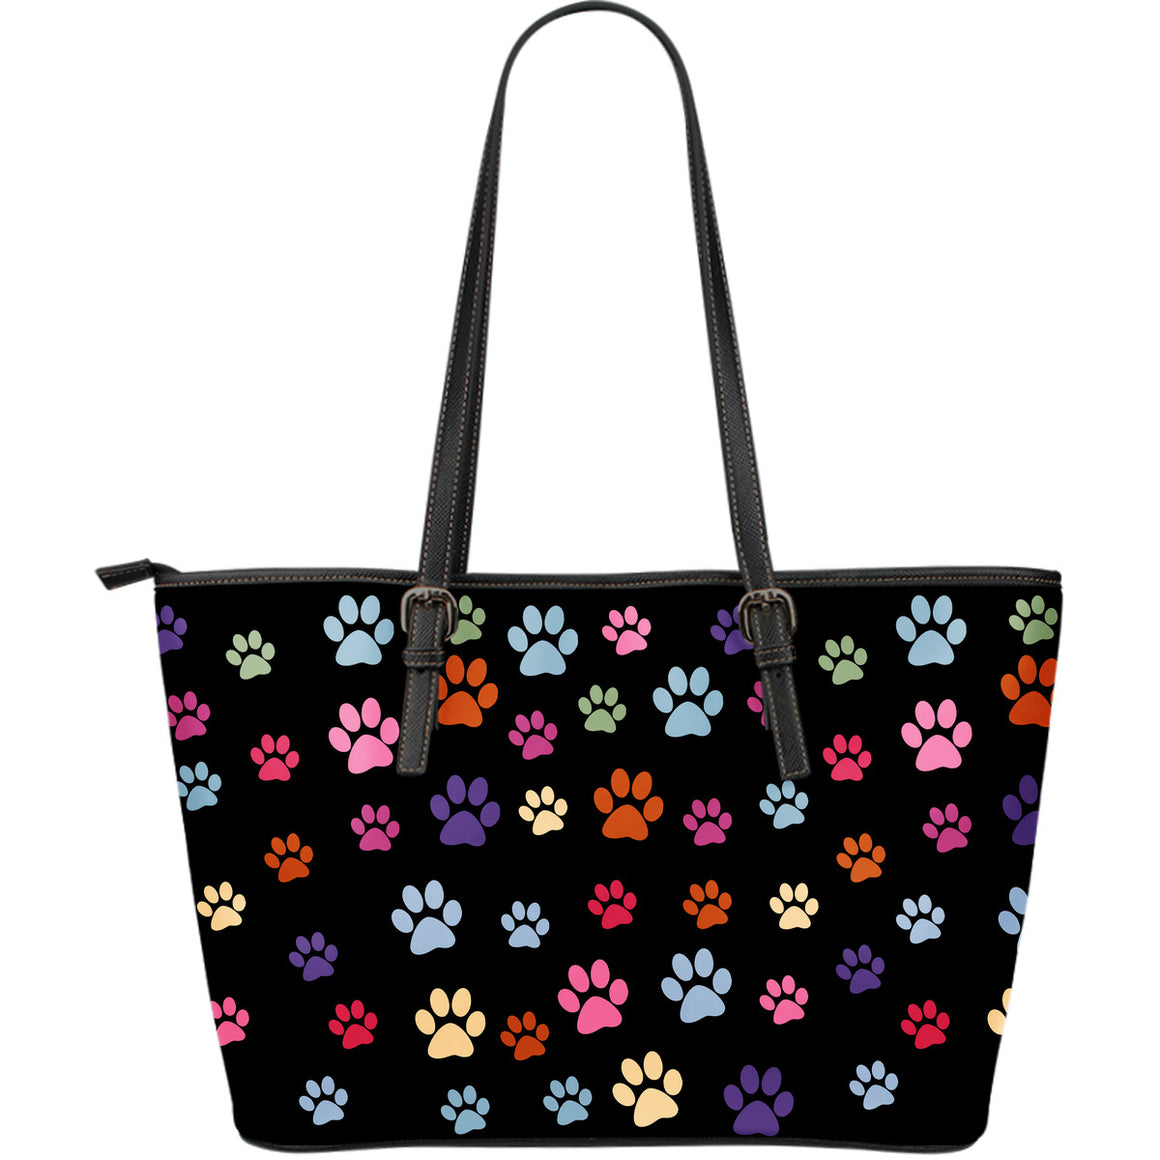 Mixed Paw Prints Large Leather Tote